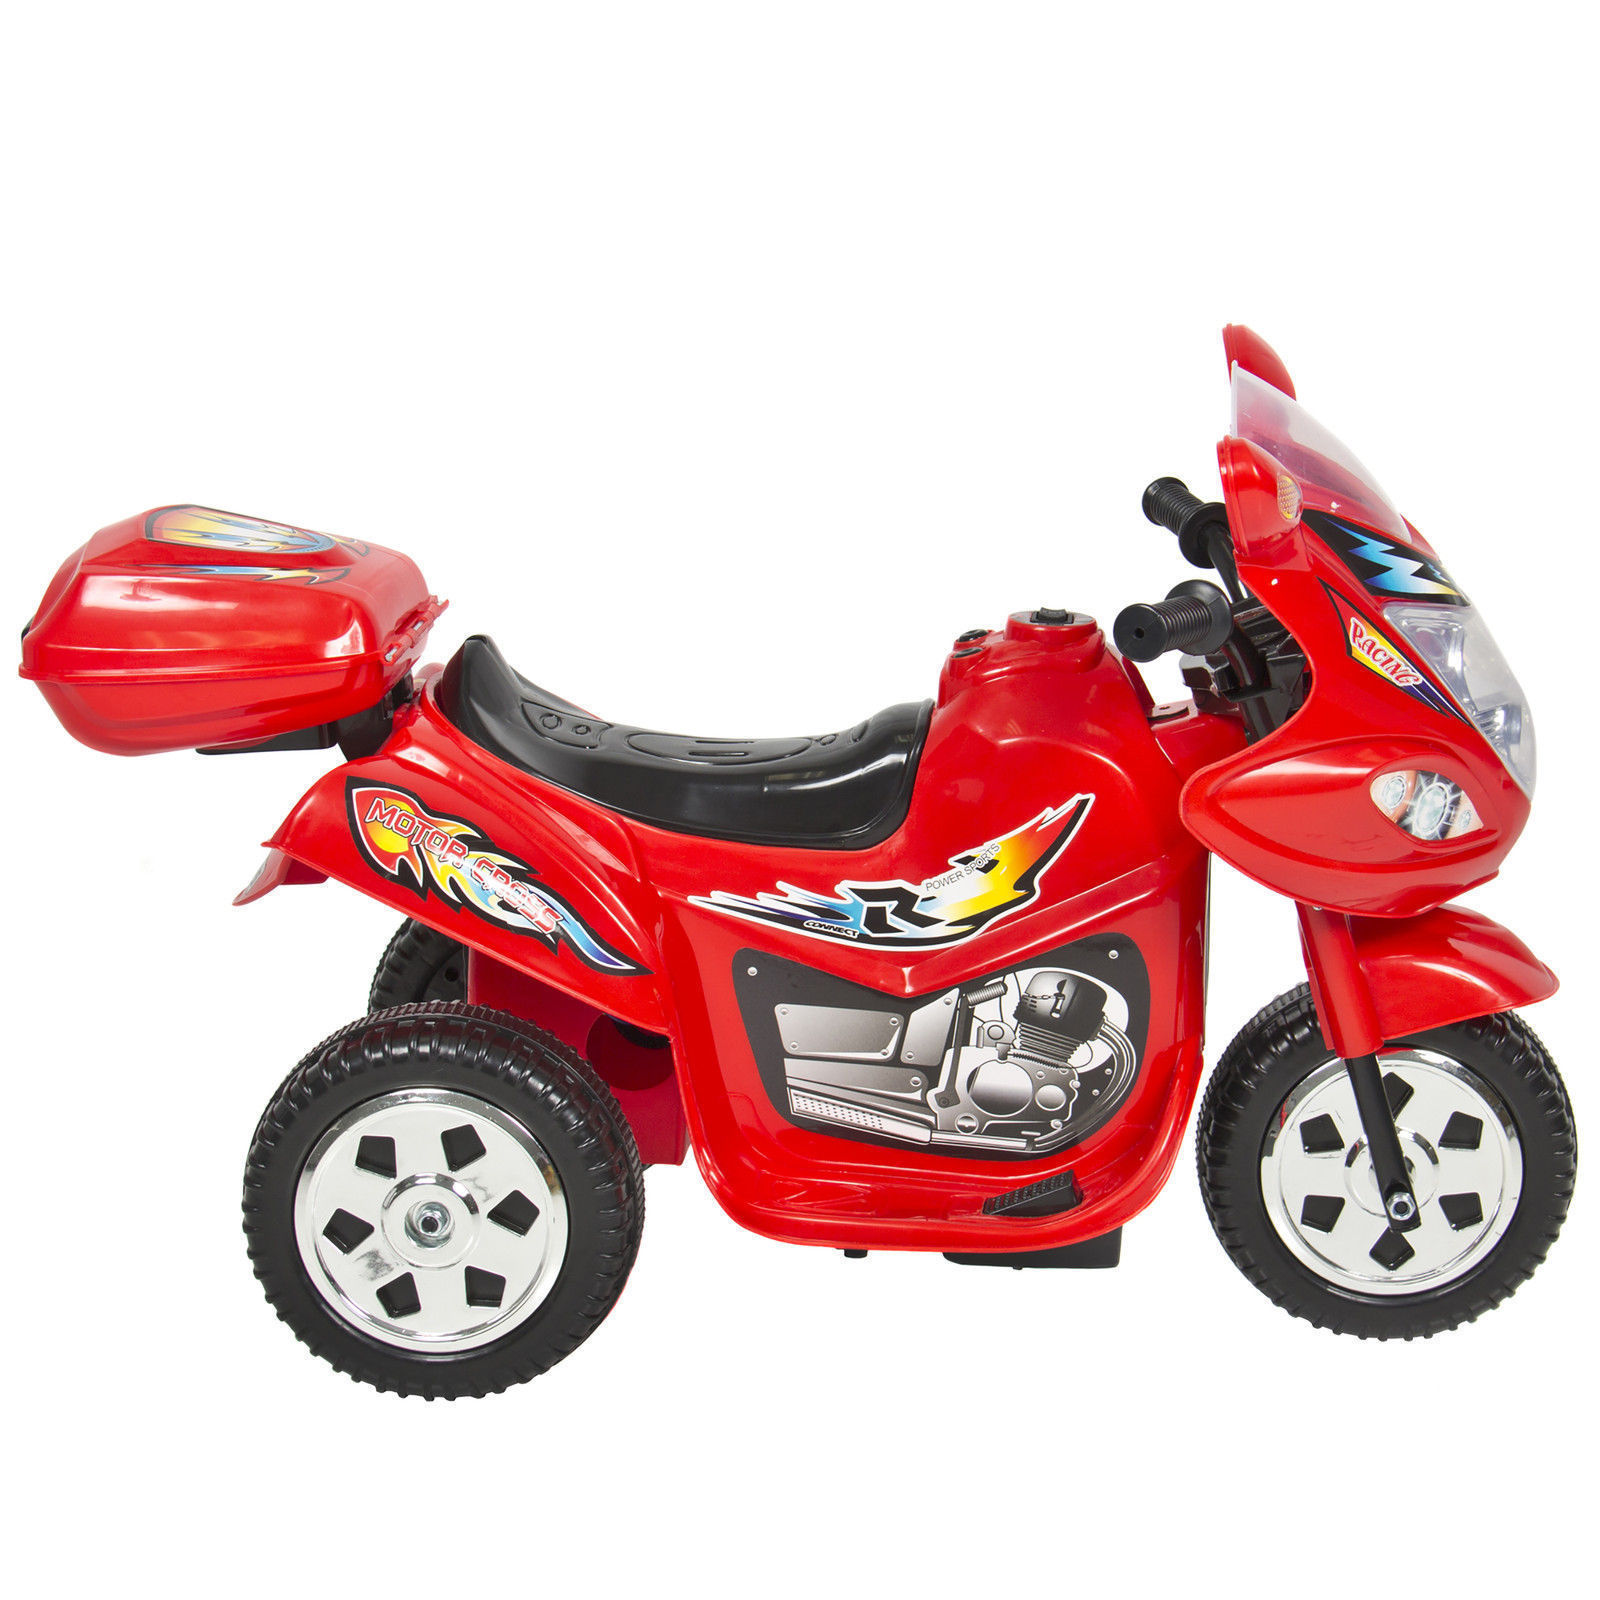 Kids Ride on Motorcycle 6v Toy Battery Powered Electric 3 Wheel ...